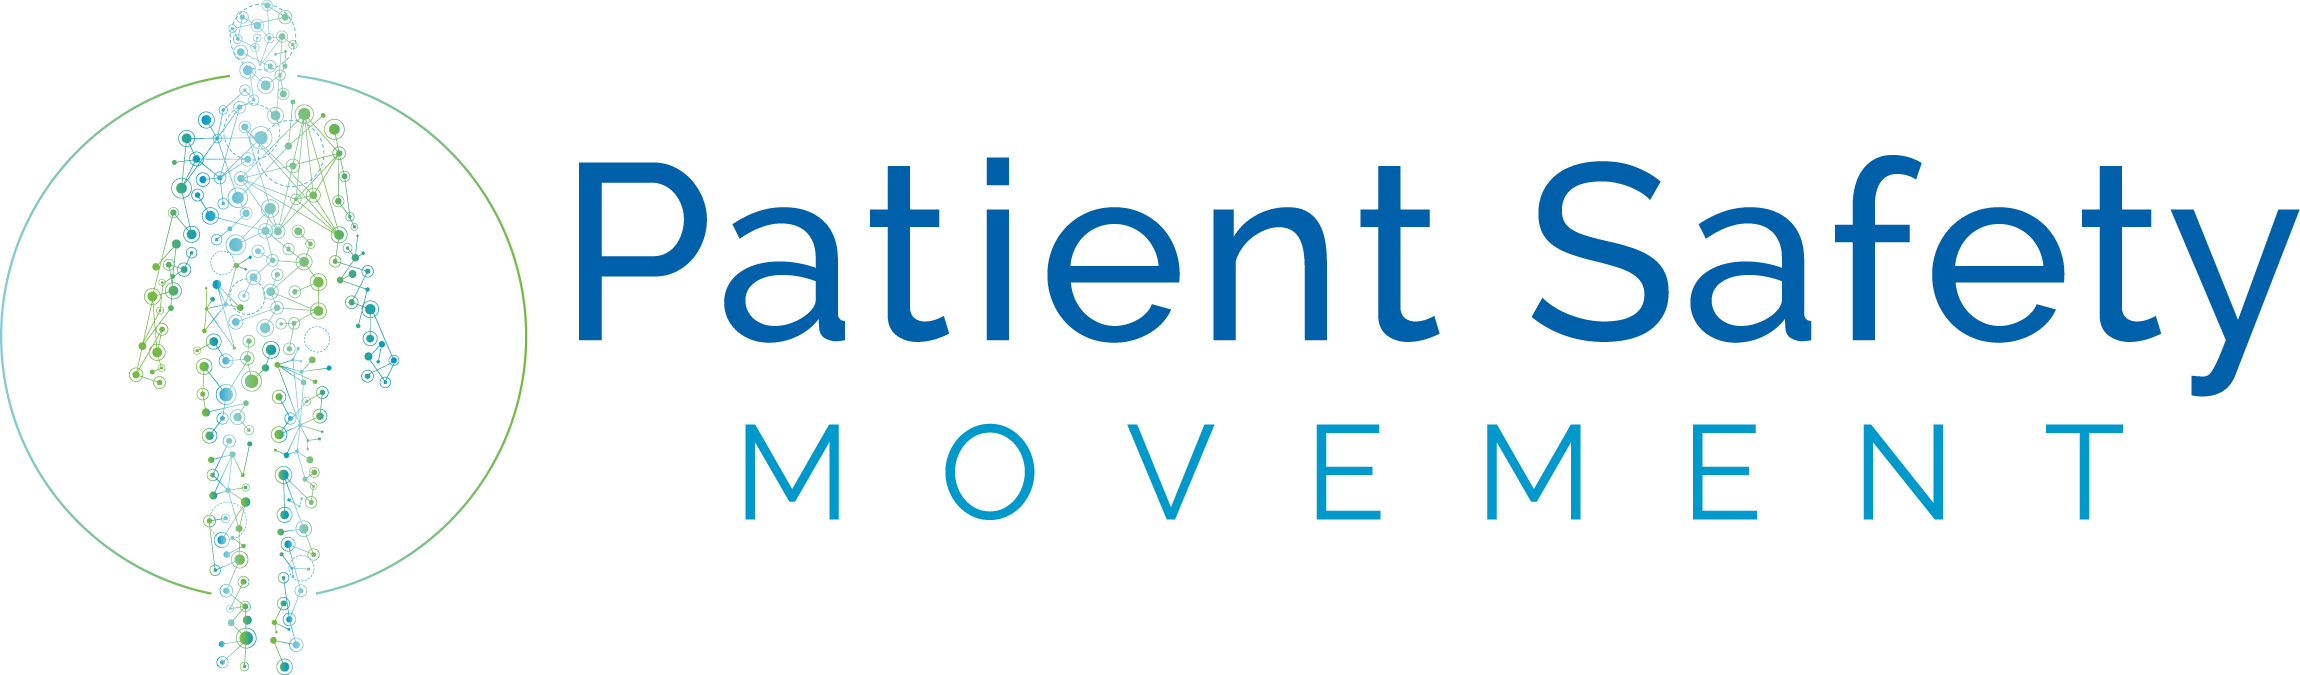 Patient Safety Movement logo